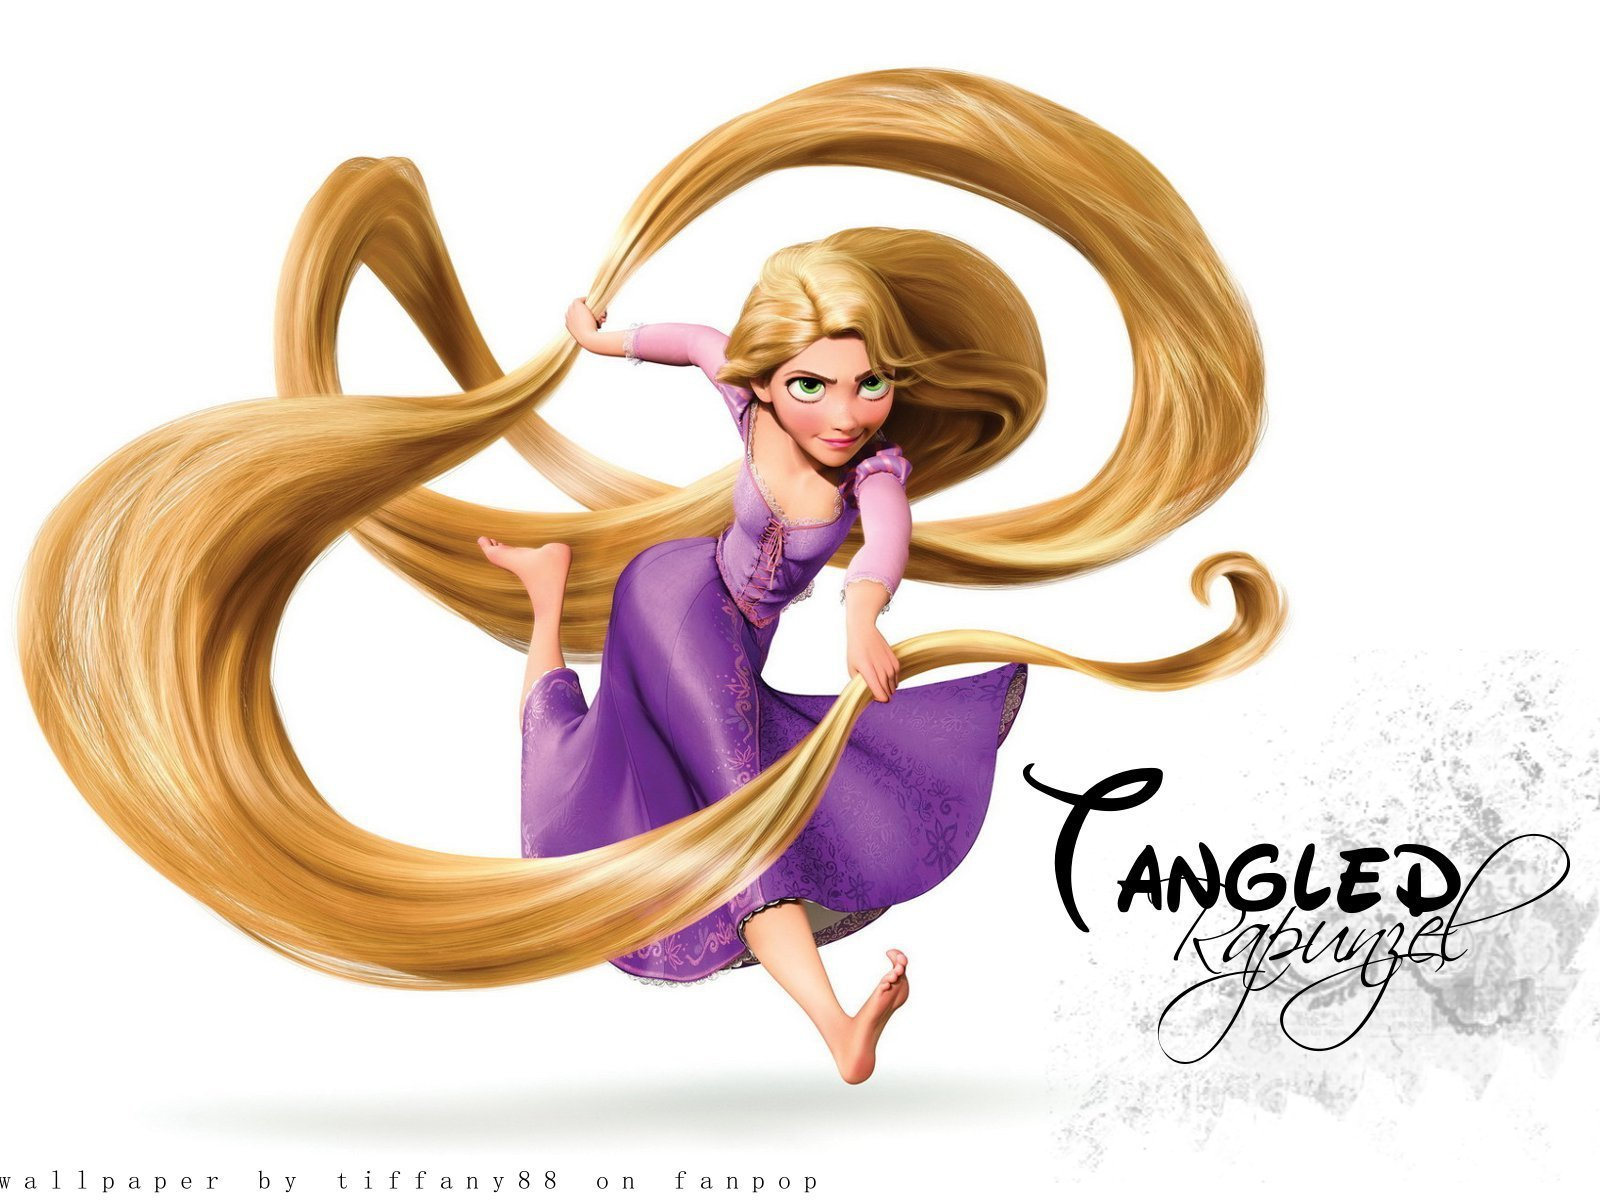 ilustracoes Wallpapers de Rapunzel Enrolados Tangled wallpapers 1600x1200